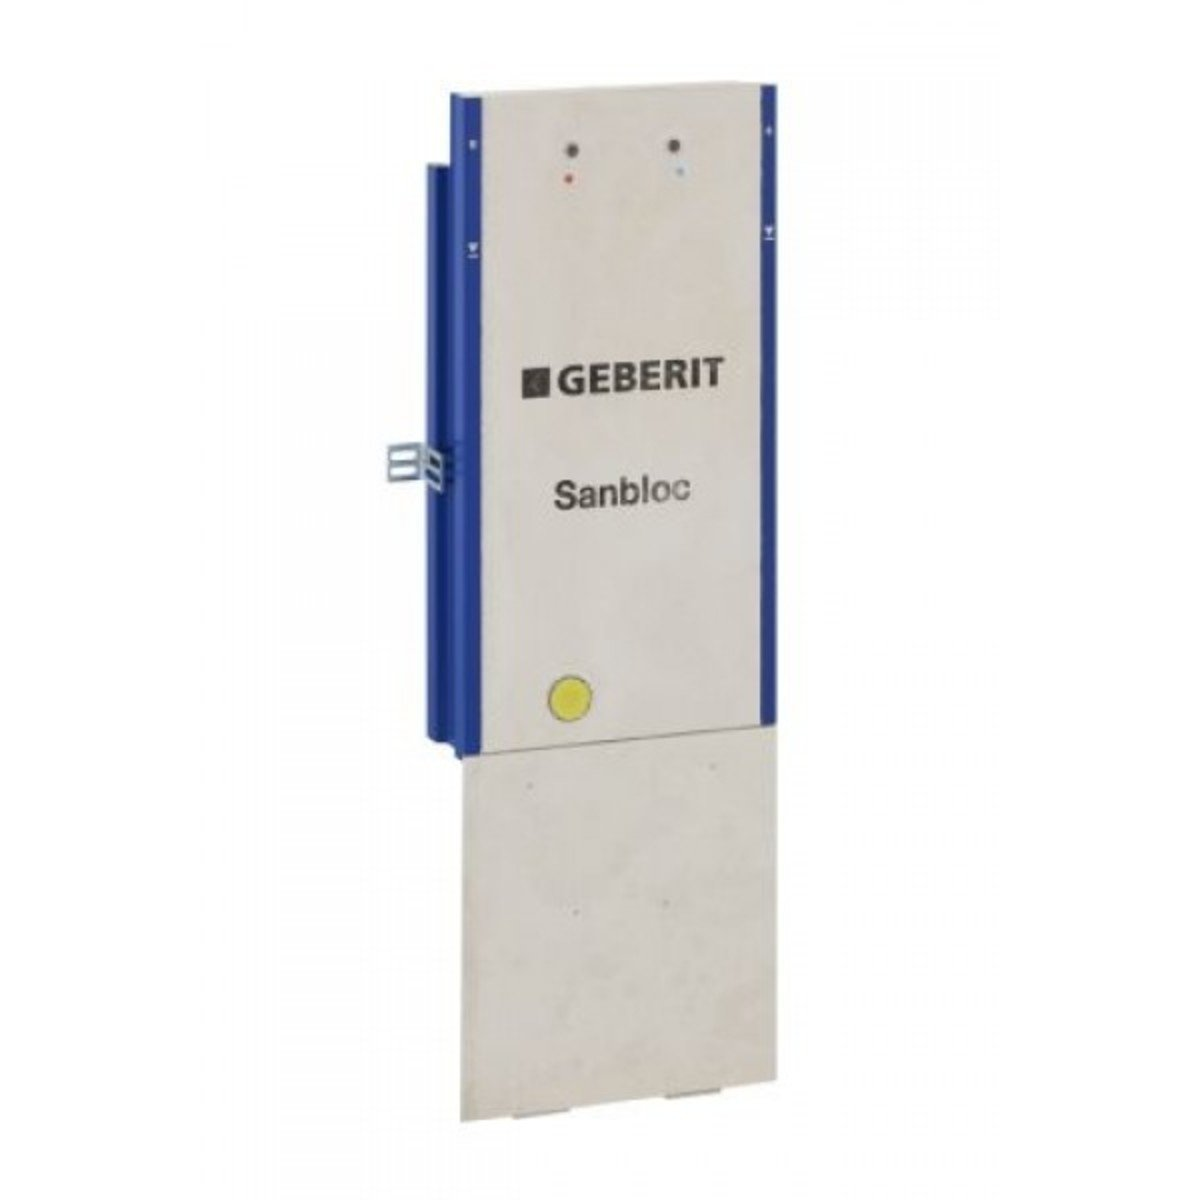 Geberit gis easy bidetmodule 120x65 95cm 442120001 for Geberit products